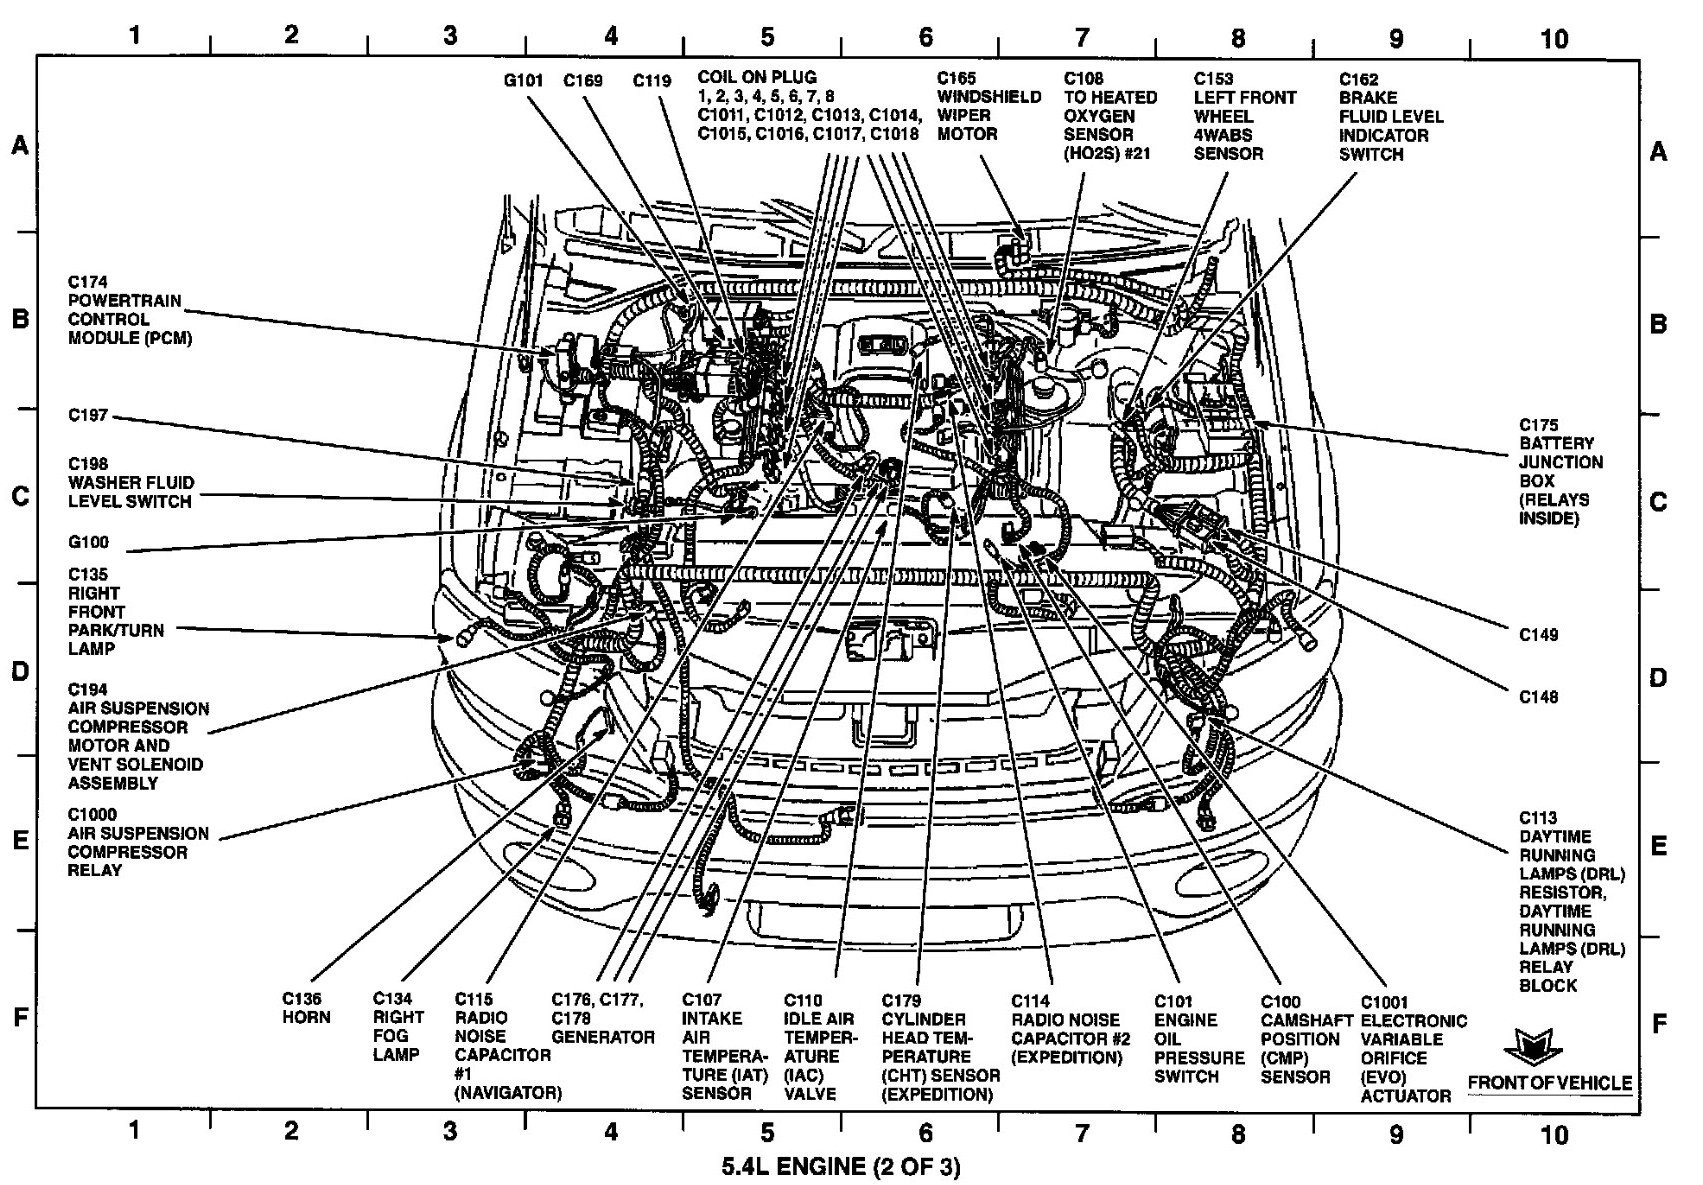 2002 Jeep Liberty Engine Diagram - wiring diagram solid-learning -  solid-learning.bellesserepoint.itbellesserepoint.it